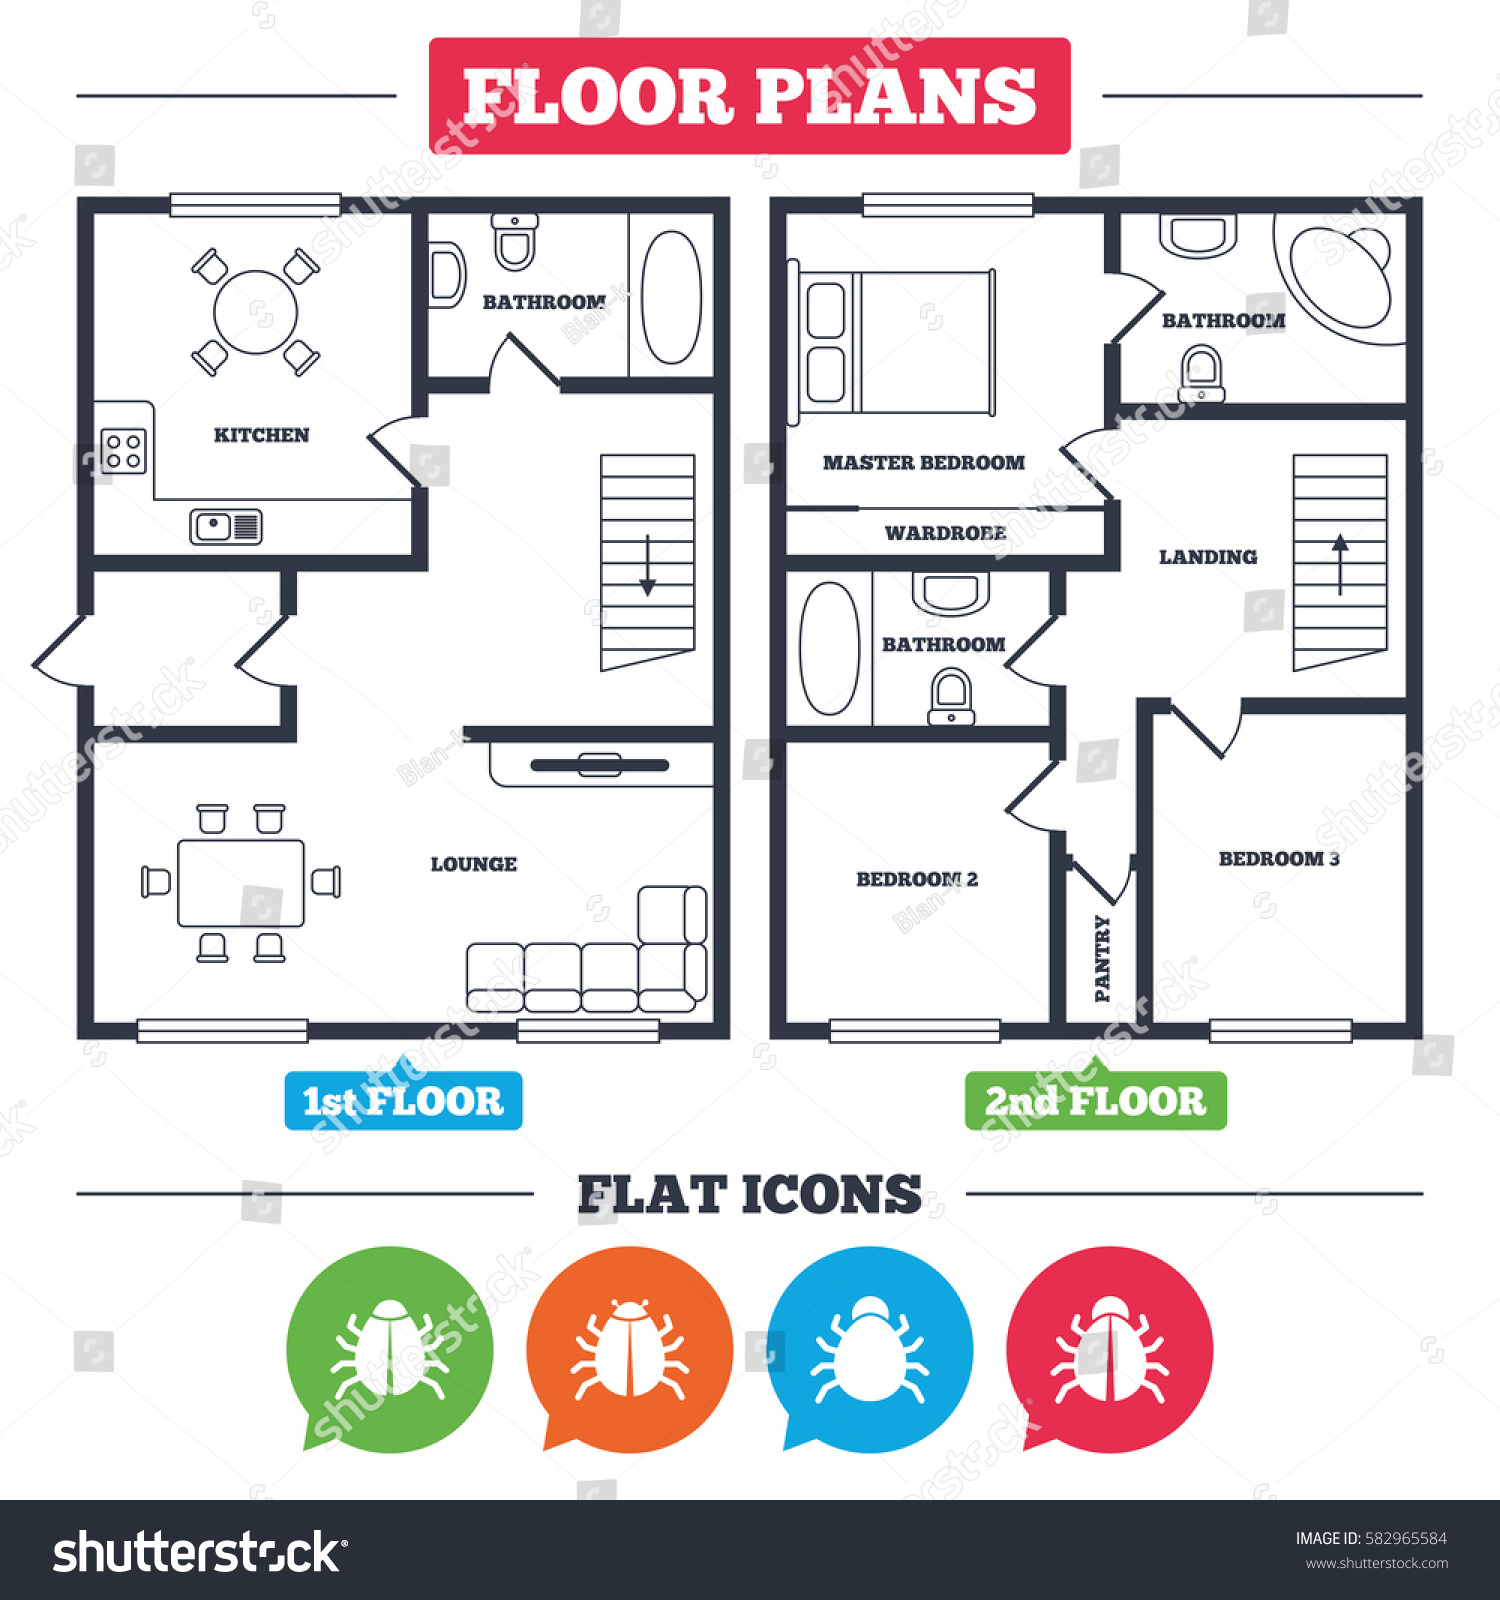 Image Result For Create And Furnish Your D Floor Plan With The Free